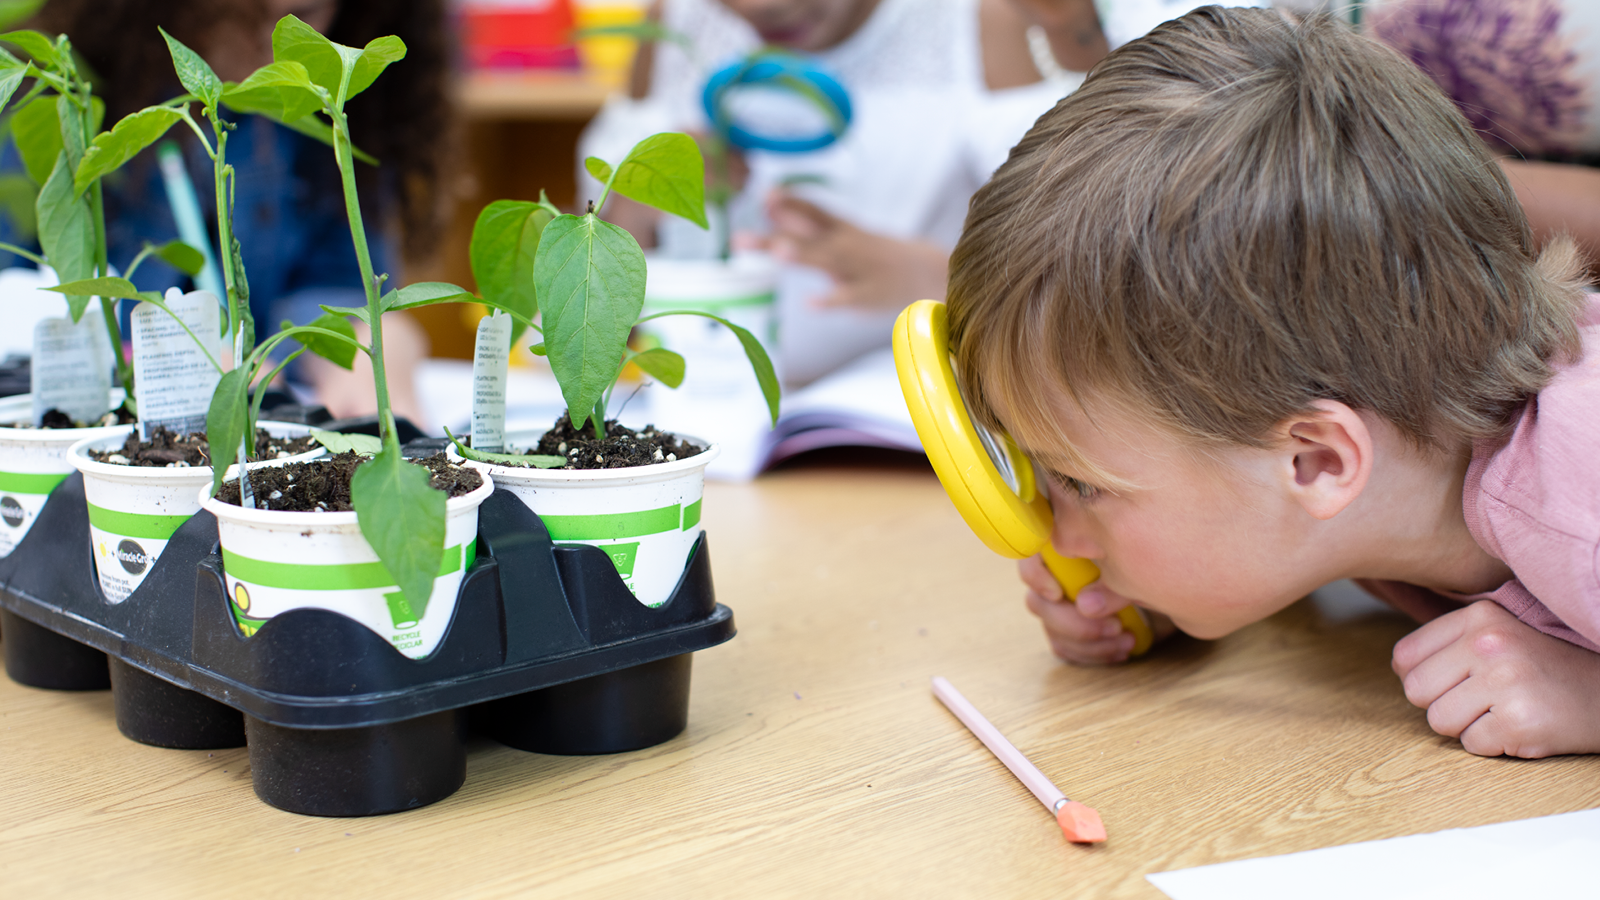 Learning by Doing: The Importance of Hands-On Science Activities